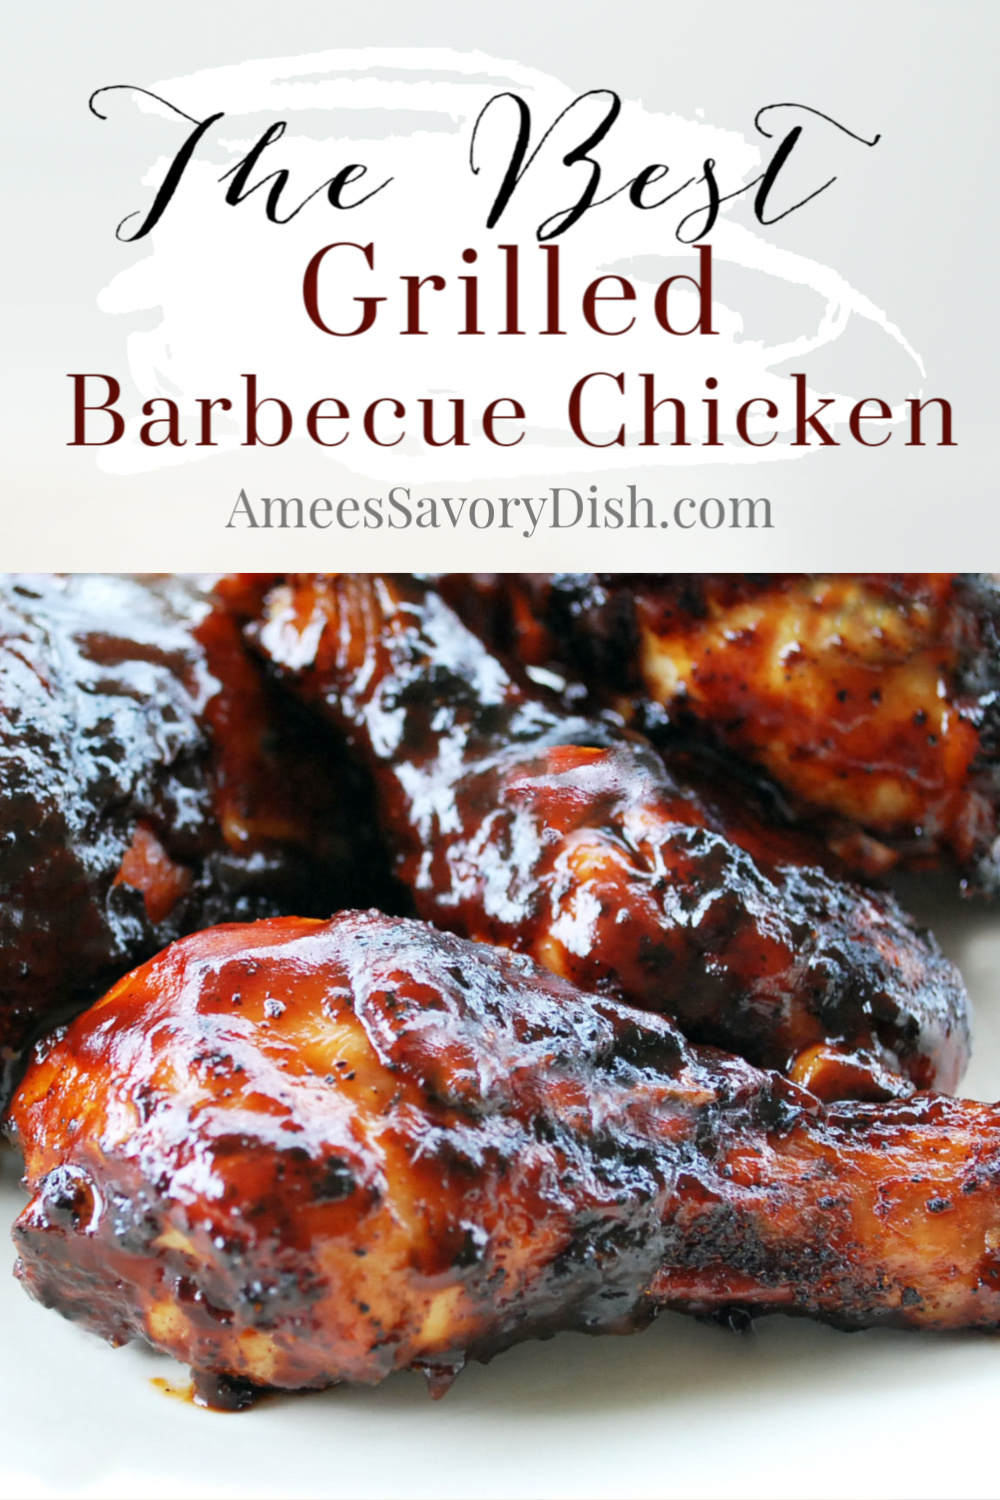 Grilled barbecue chicken can be difficult to cook perfectly. If left on too long, it can become dry, or the sauce can become burned. Grab my tips and recipe for making delicious, super moist grilled barbecue chicken! #grilledchicken #barbecuechicken #chickenrecipes via @Ameessavorydish